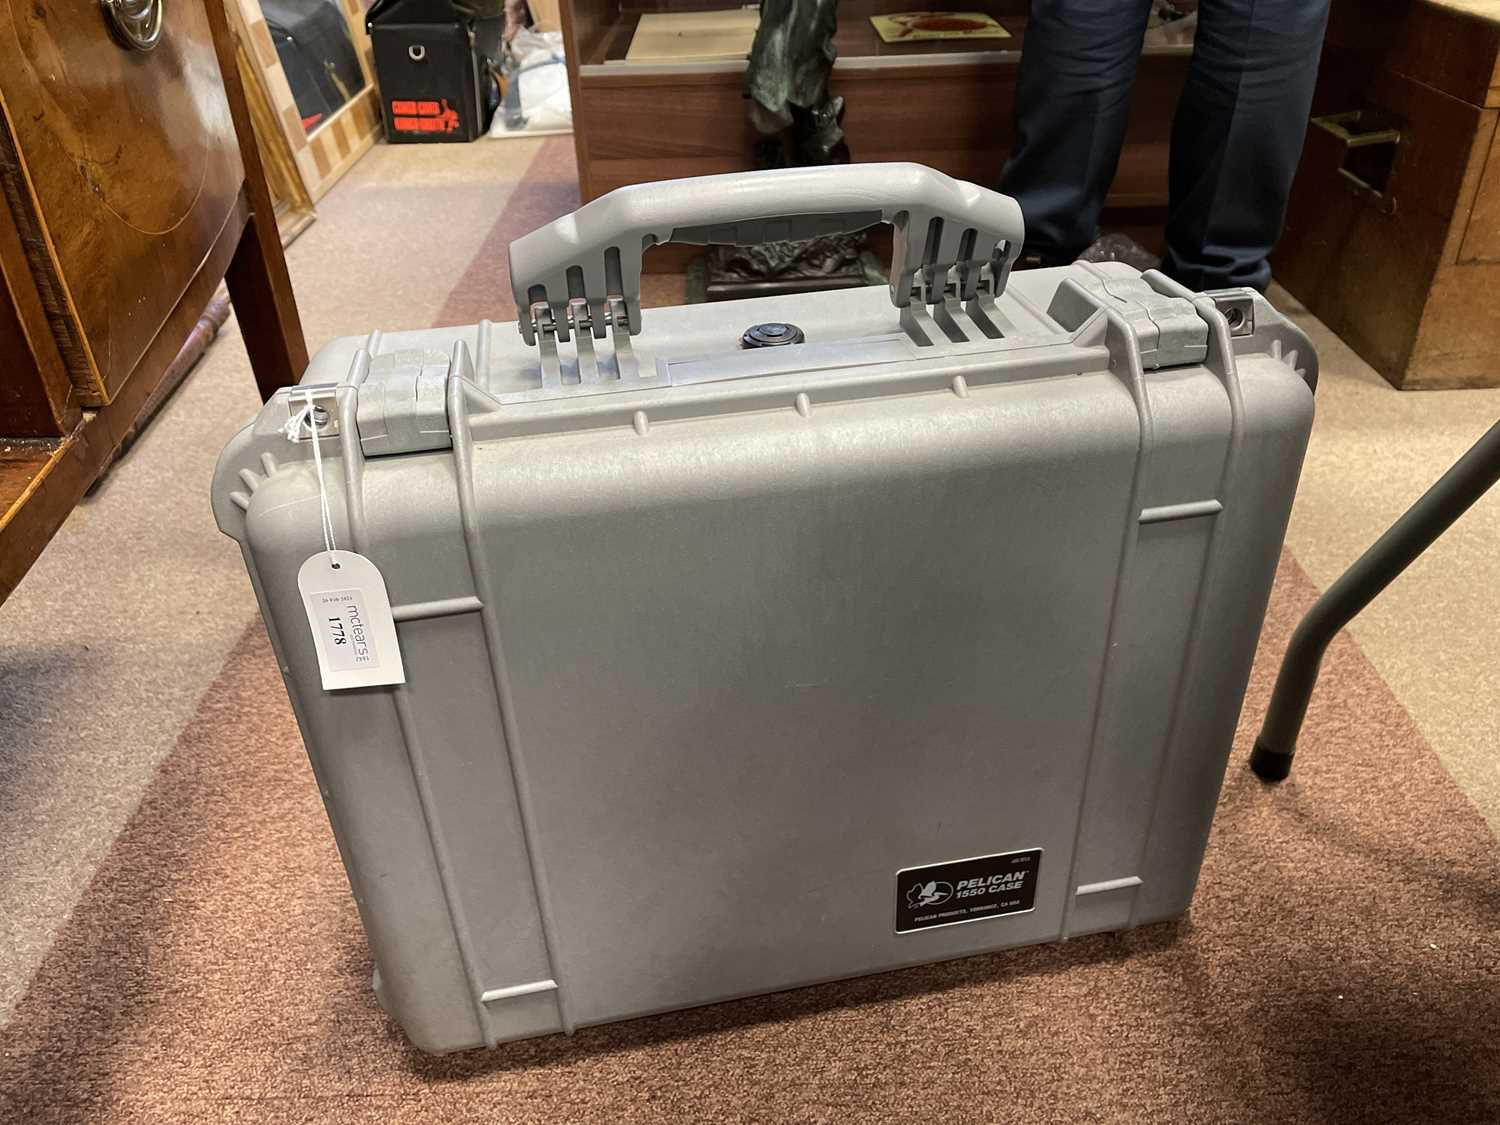 Lot 1778 - NOTE UPDATED PHOTOGRAPH - A PELICAN 1550 CASE